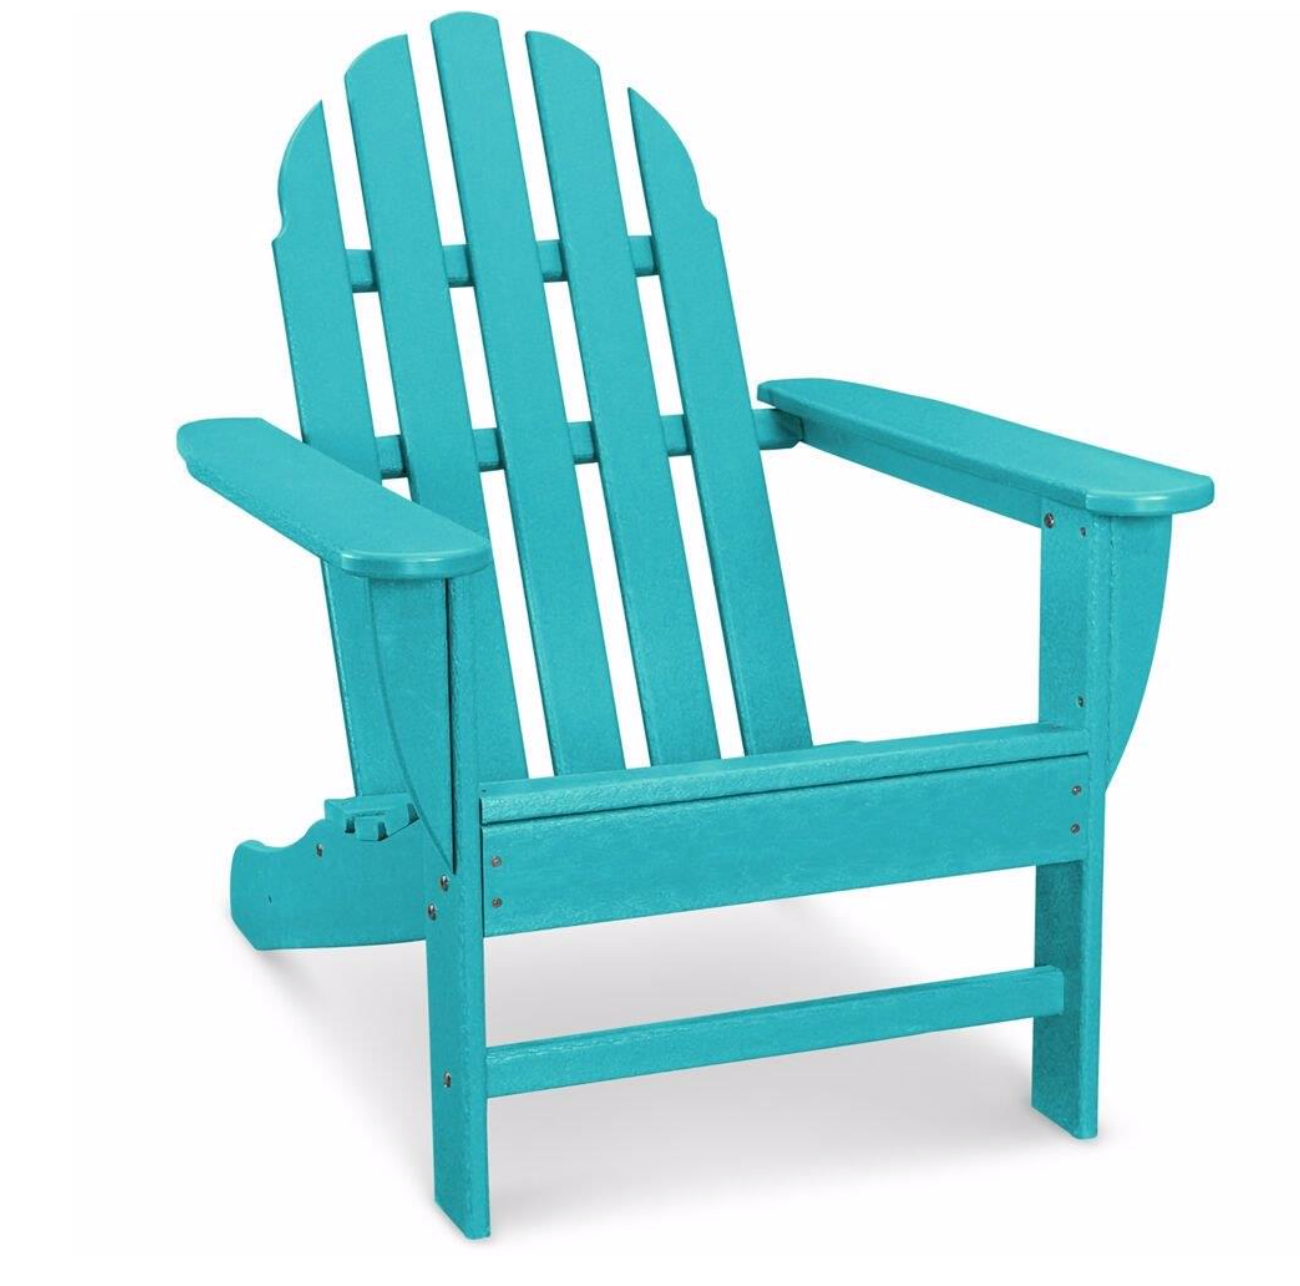 Sit back and relax with a traditional Adirondack Chair